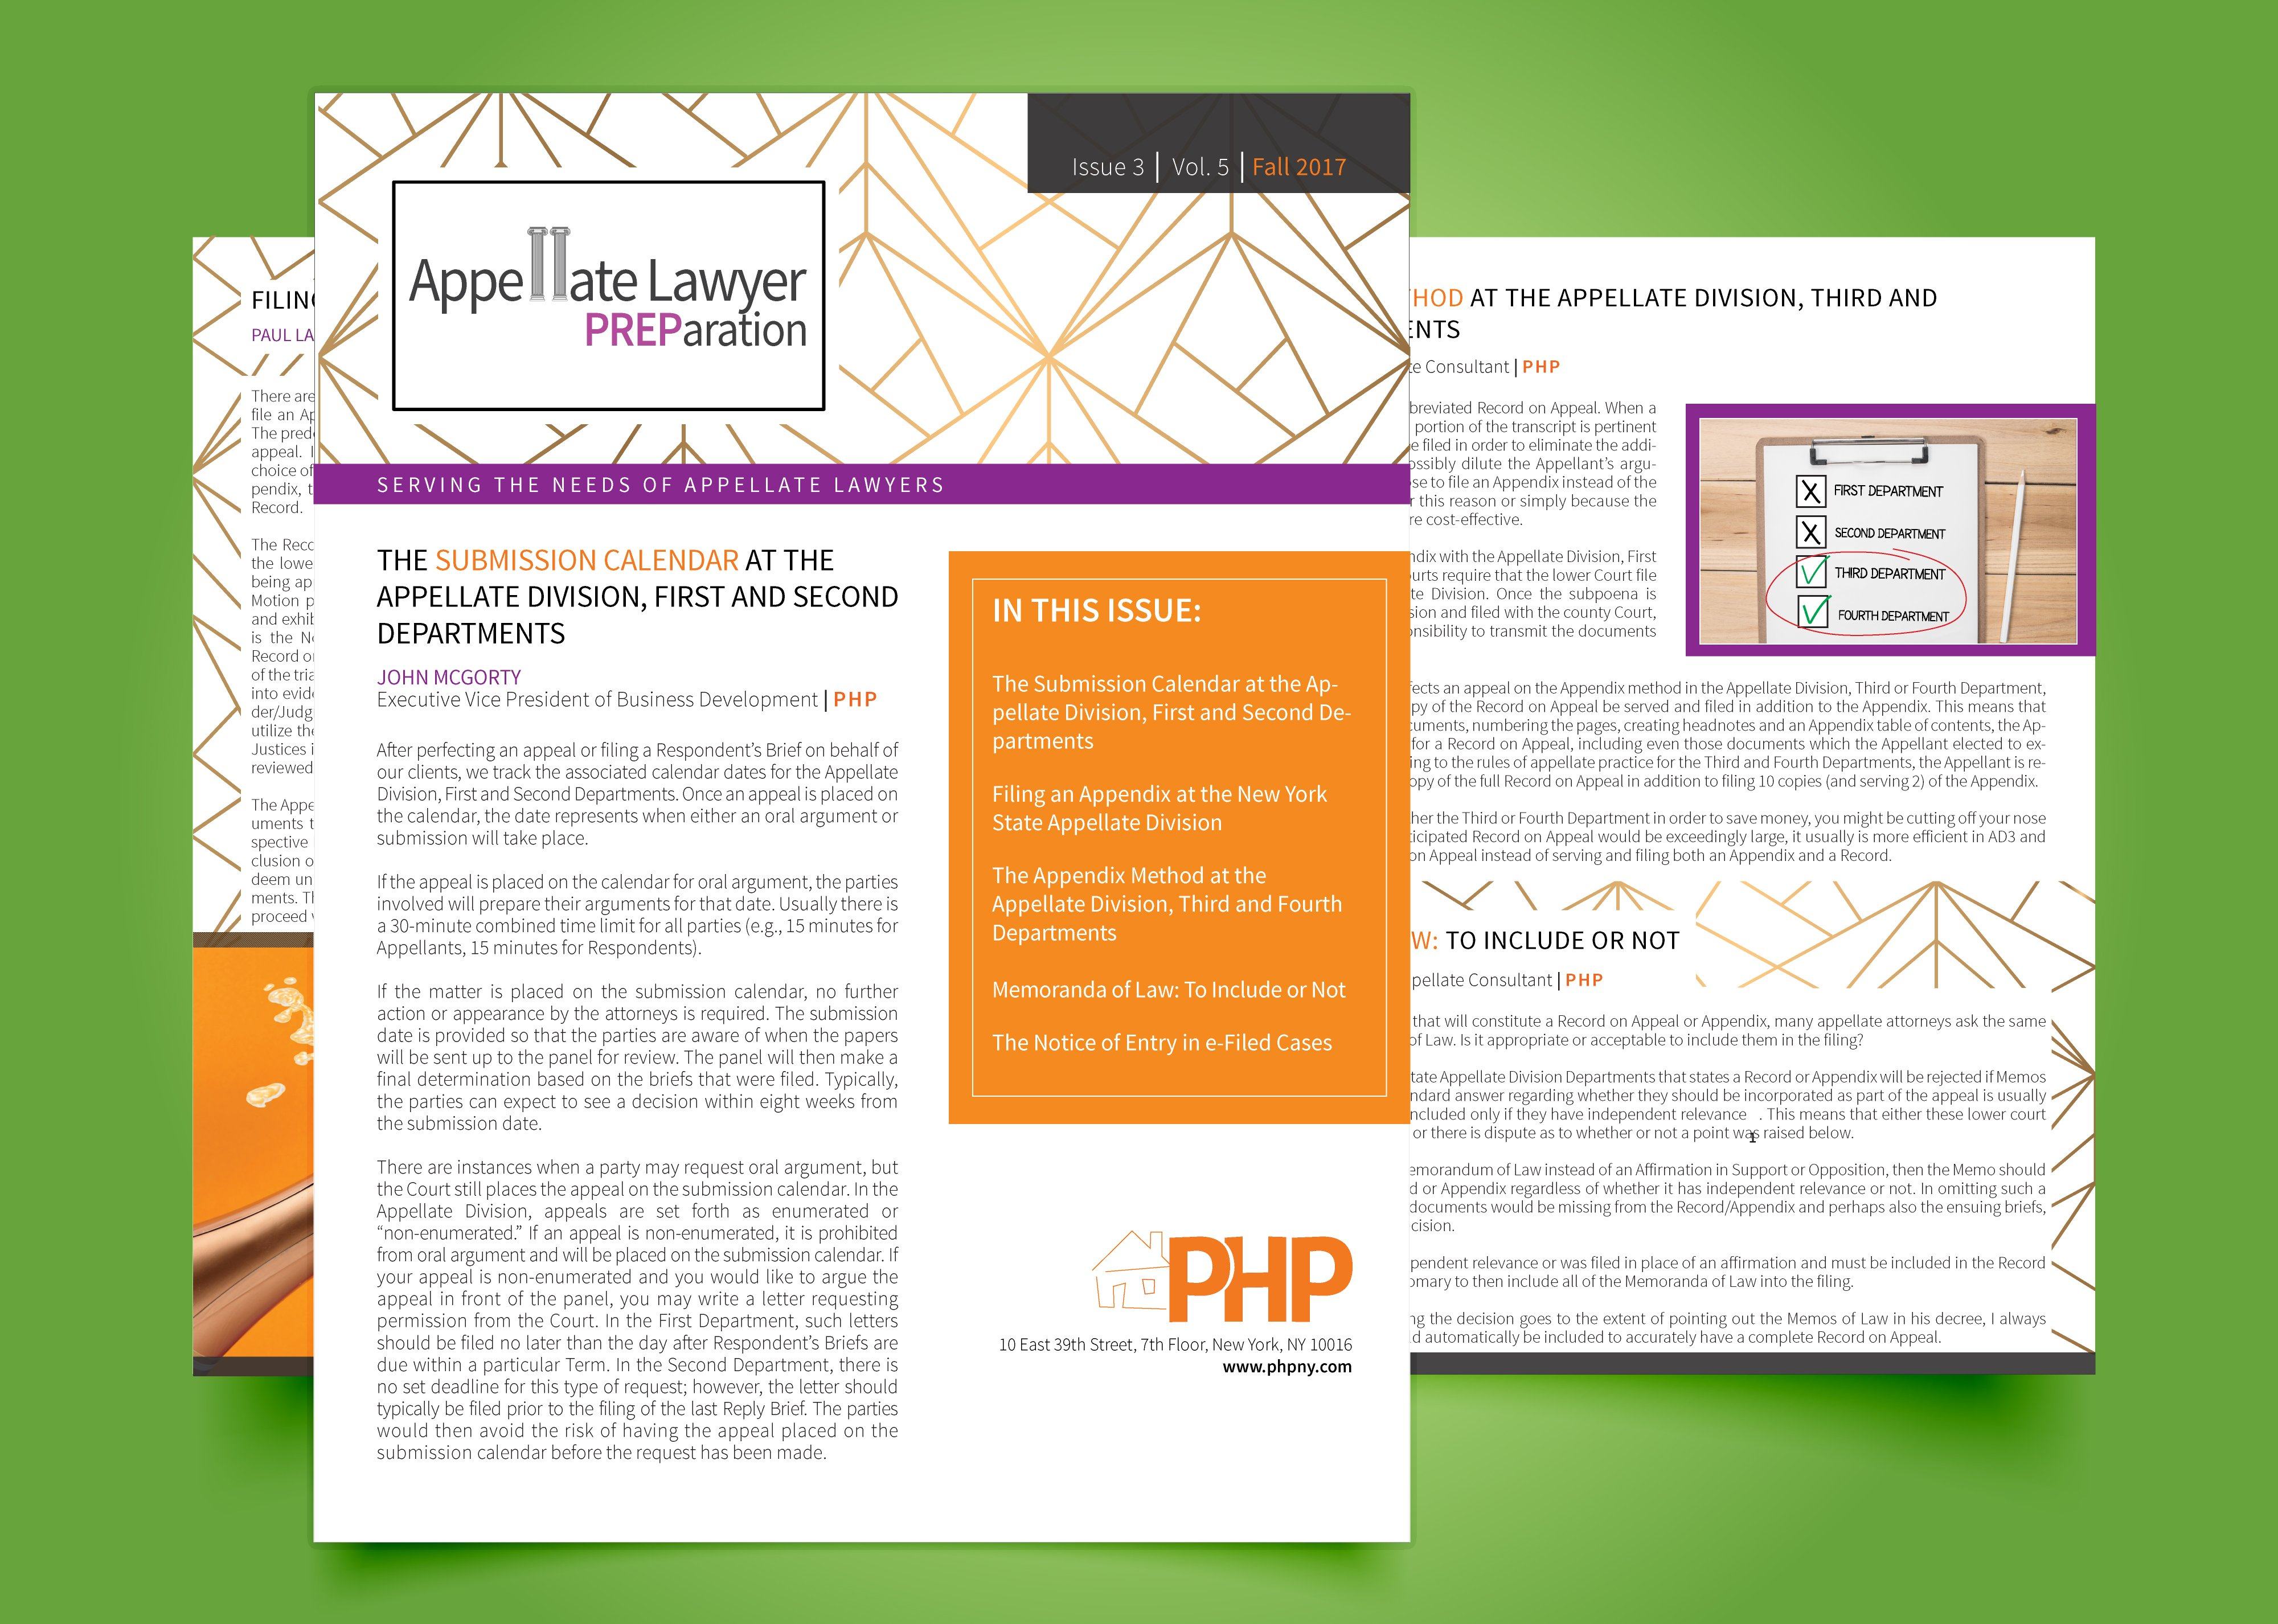 Issue 3 | Vol. 5 | Fall 2017 - Php In Appellate Divisiohjn Seconf Dept Calendar